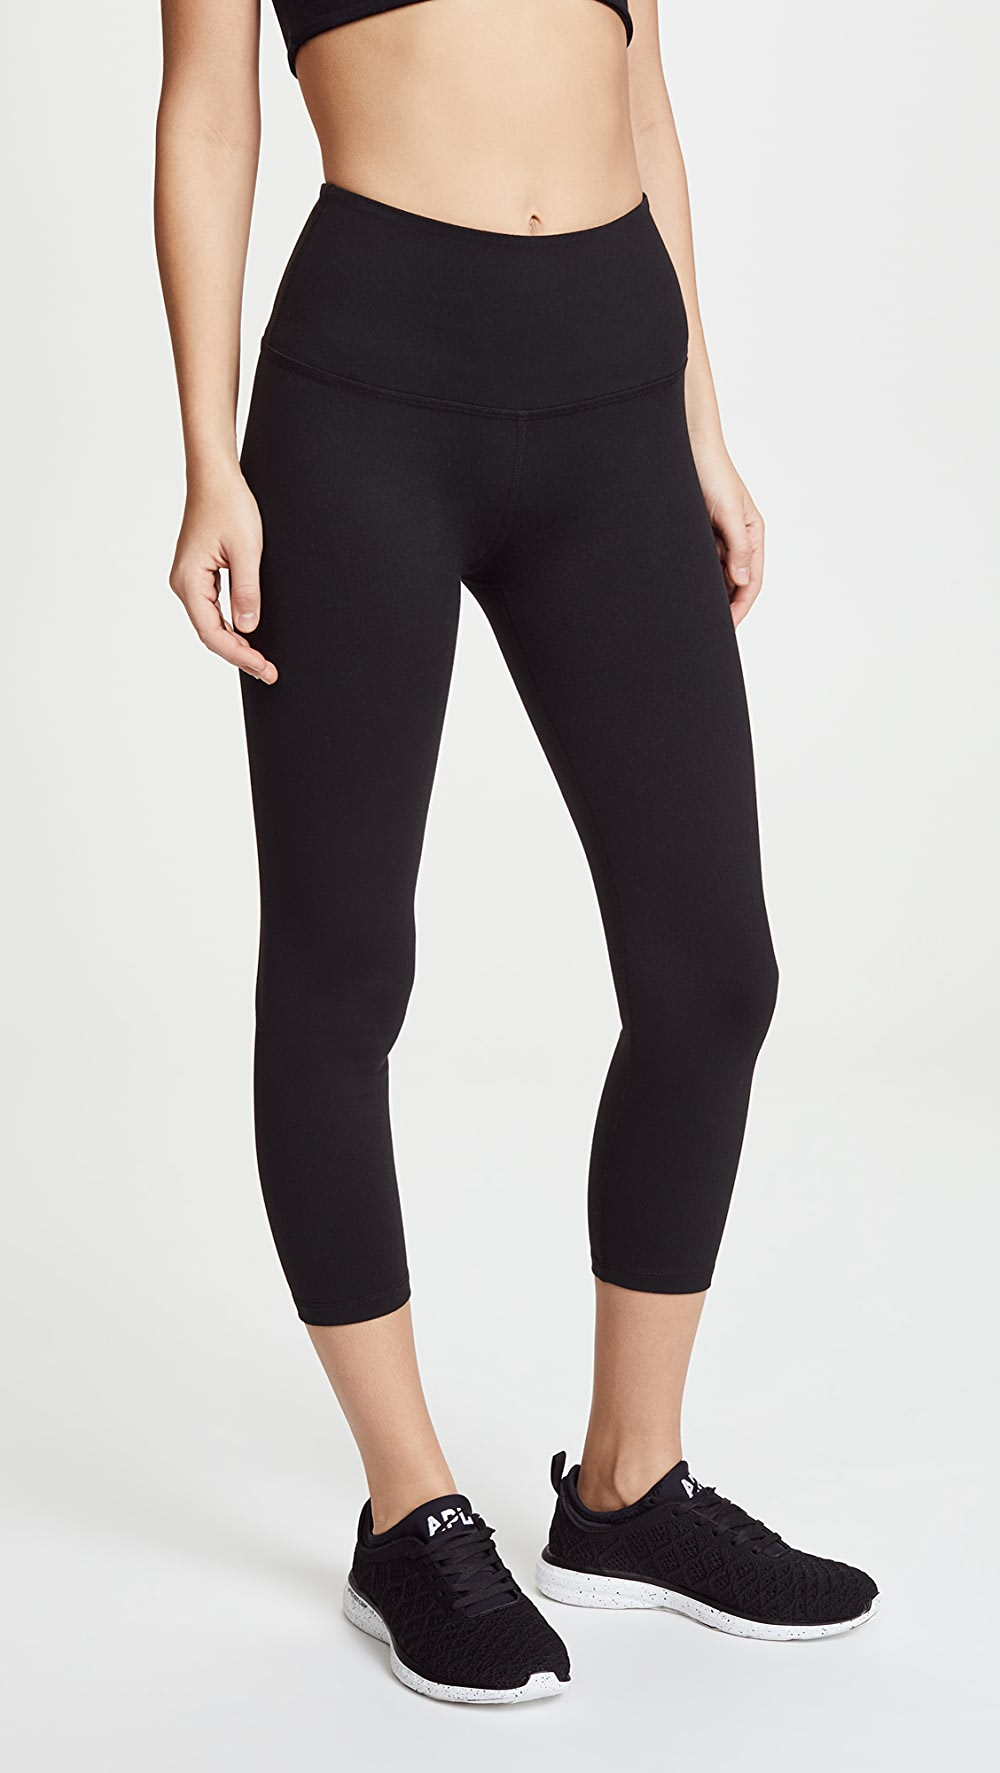 100% Quality Beyond Yoga - Core High Waisted Capri Leggings As Effectively As A Fairy Does